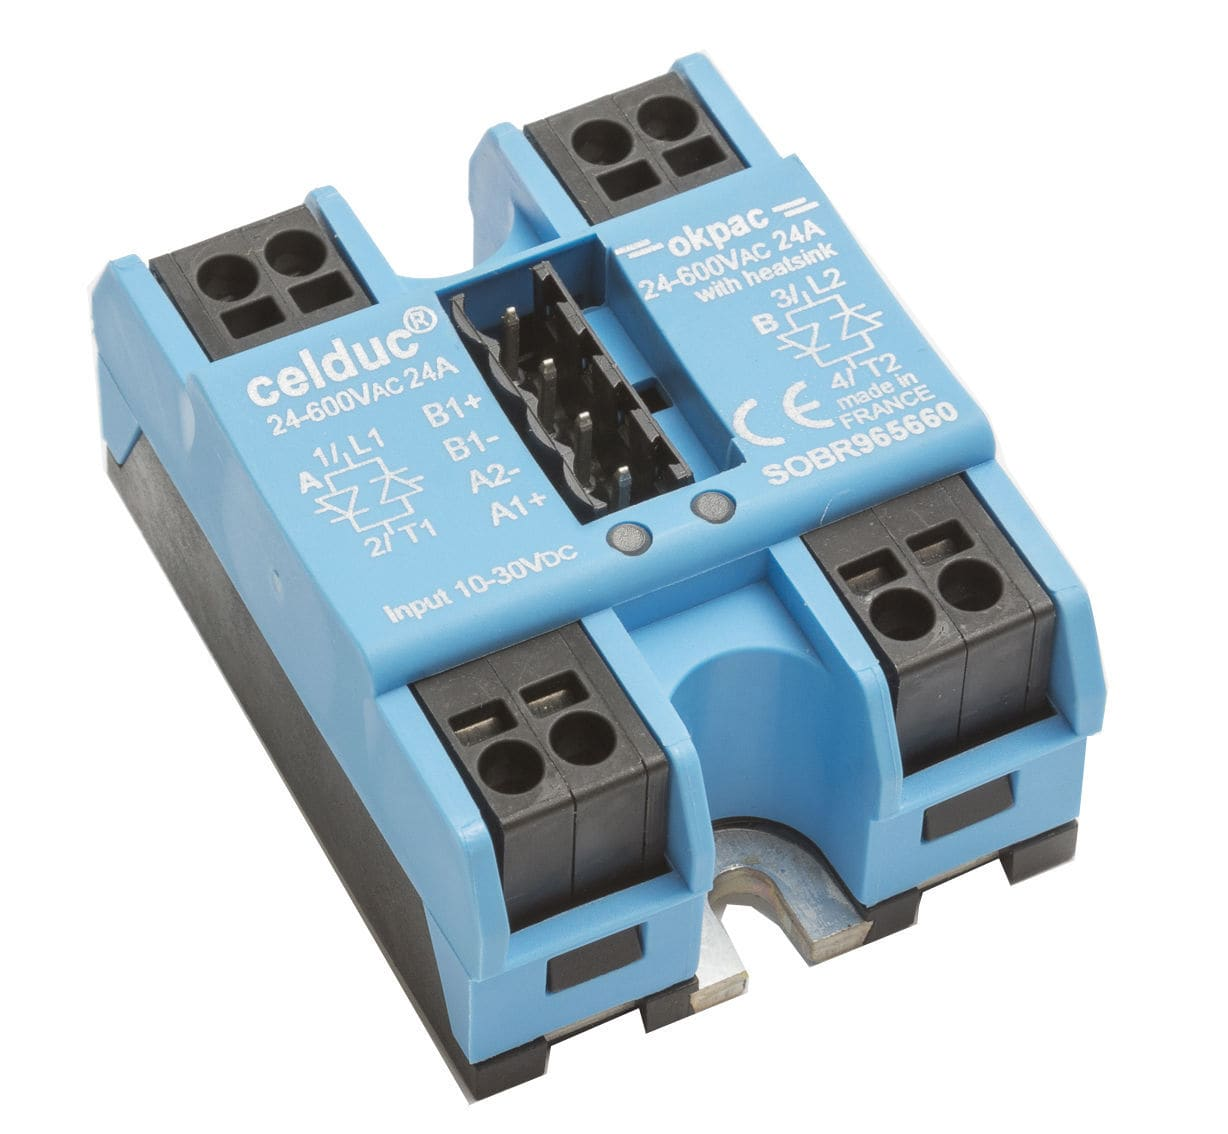 Ac Output Solid State Relay Two Phase Sobr Series Celduc Relais For